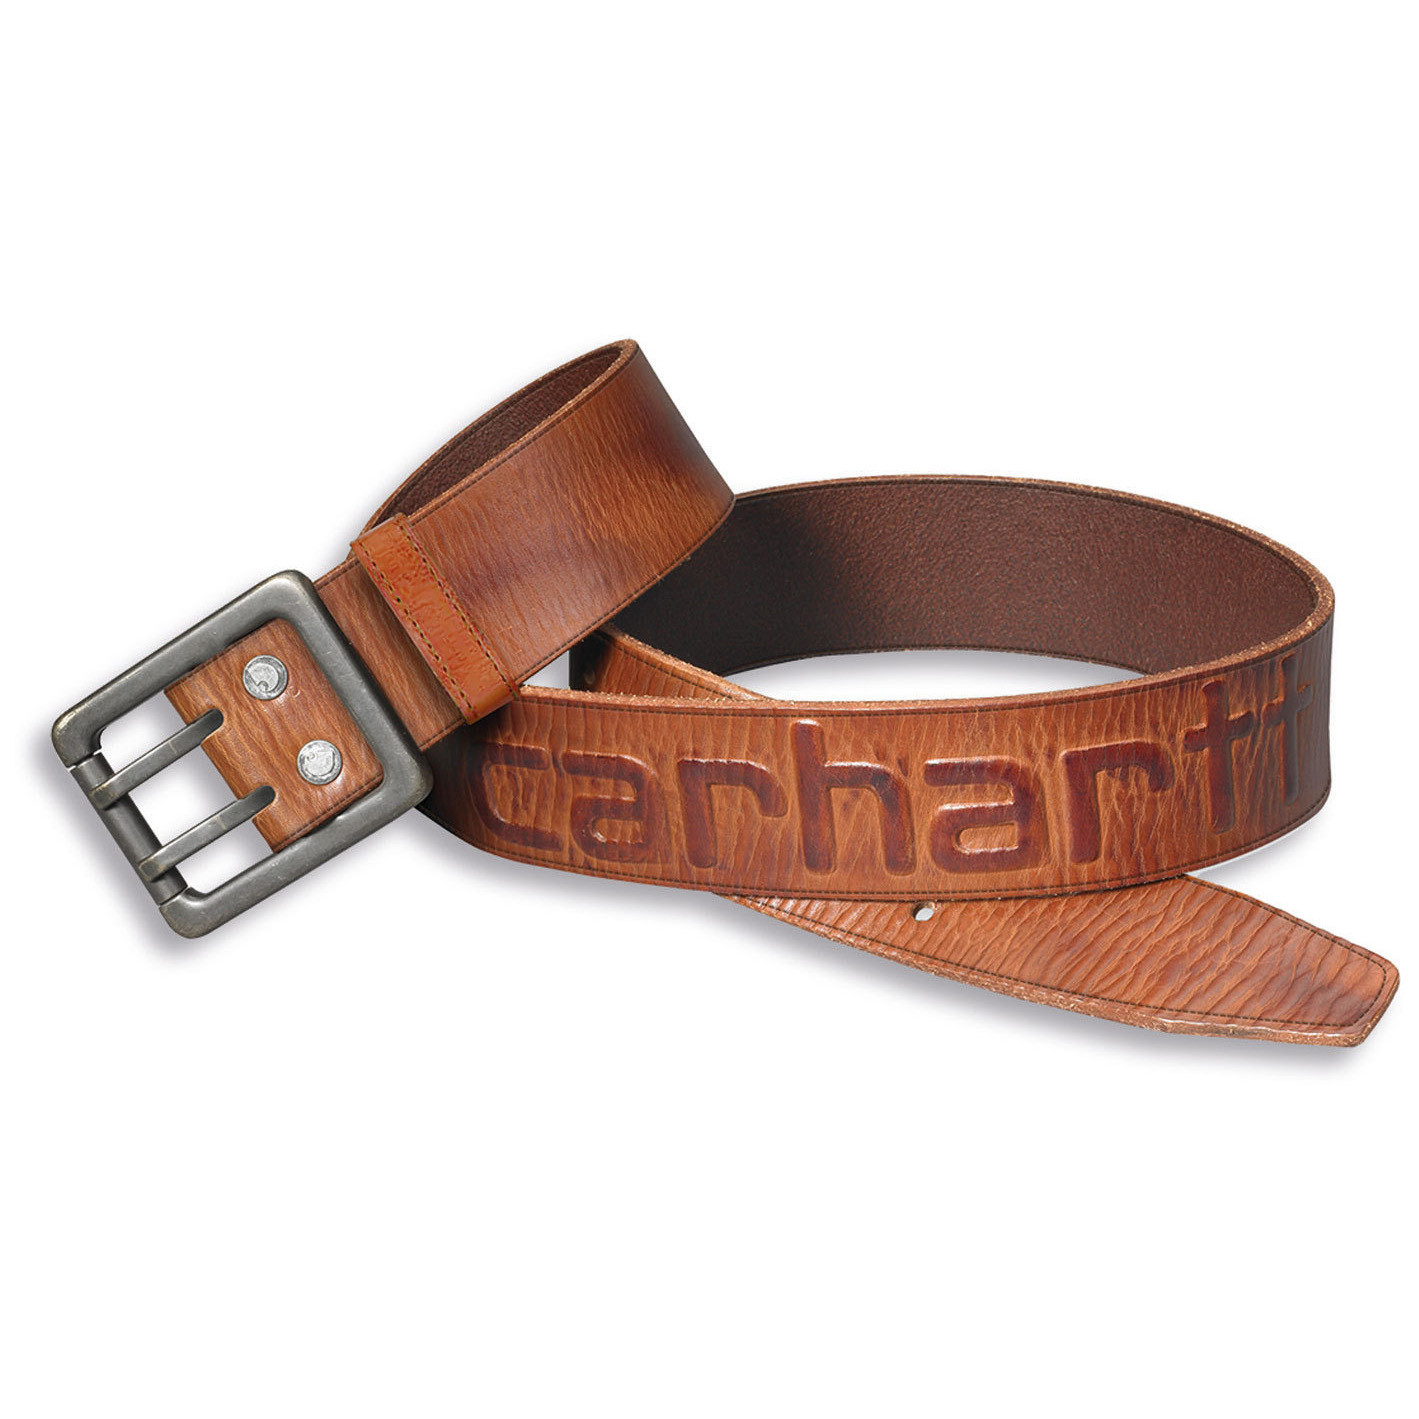 Ремень кожаный Carhartt Logo Belt - 2217 (Carhartt Brown, W38)